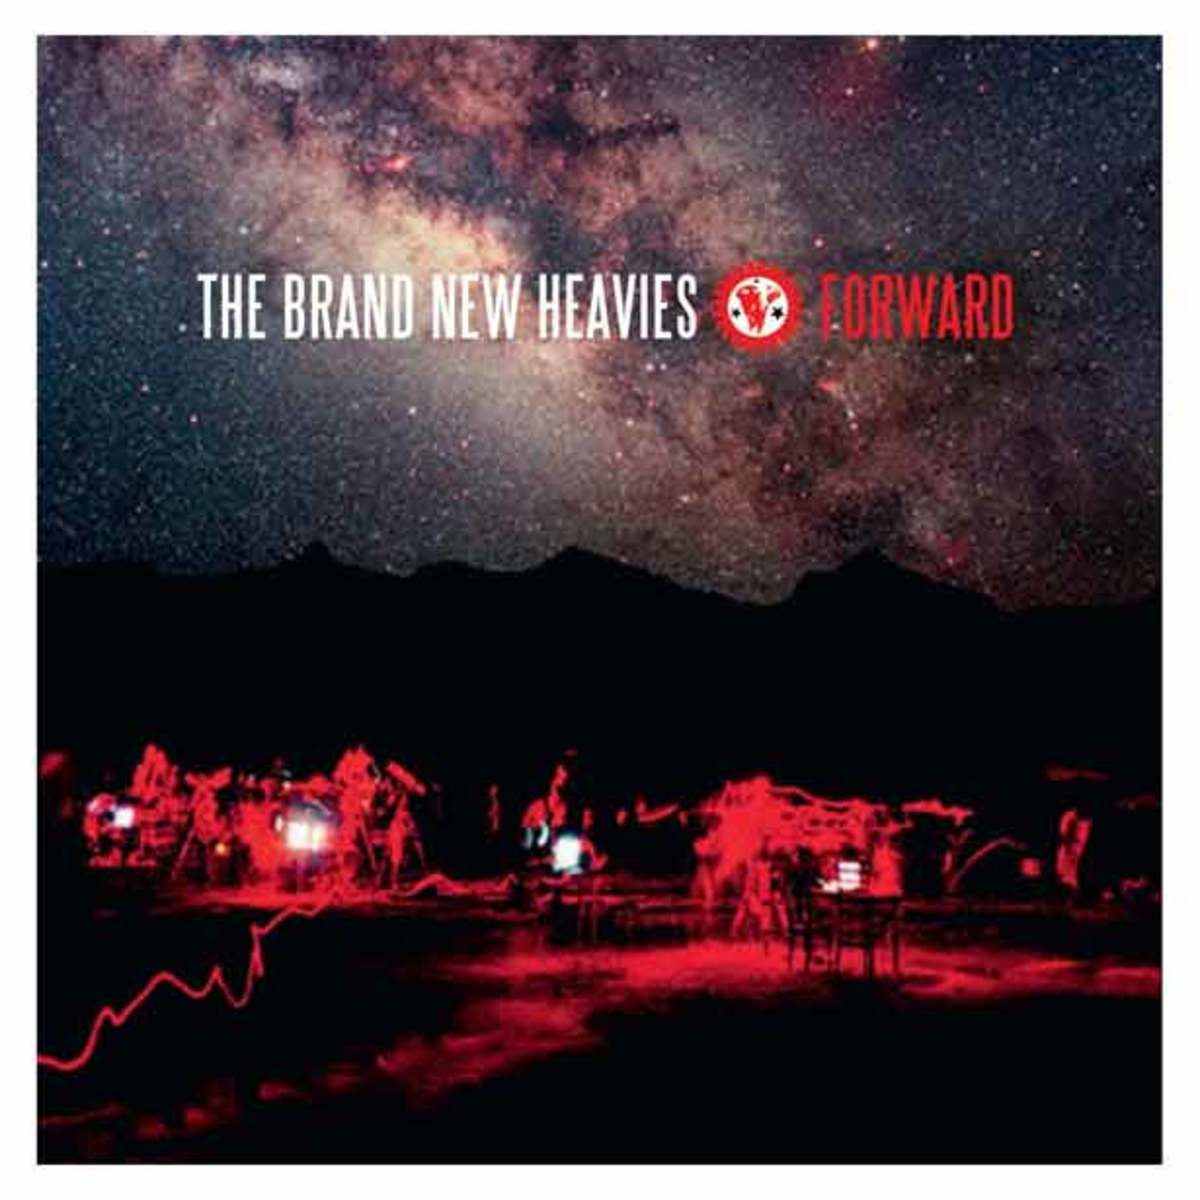 EDM News: The Ultimate Groovy Summer Soundtrack, Brand New Heavies Release New Album